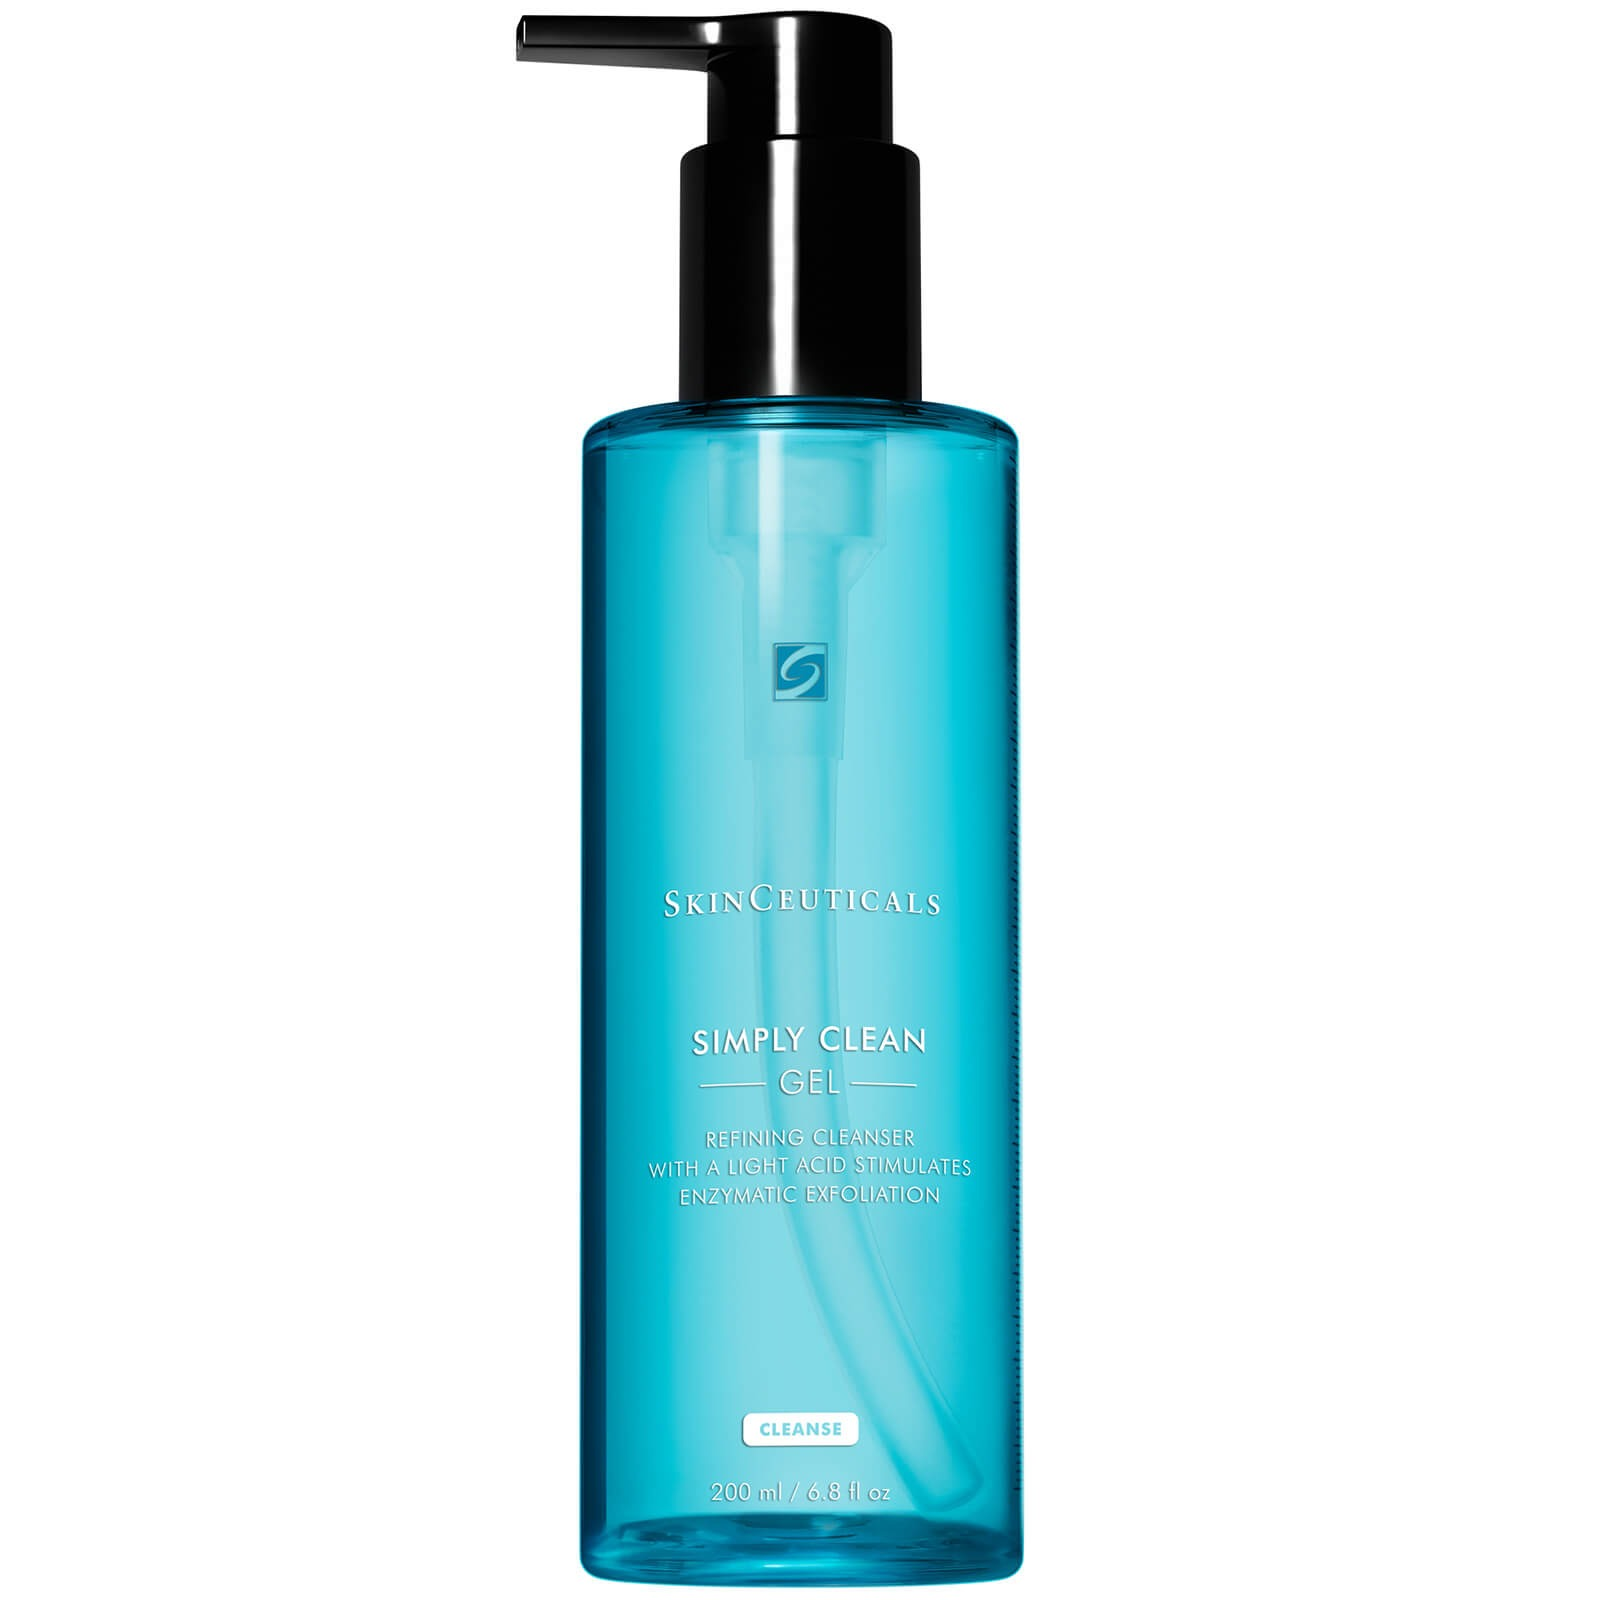 SkinCeuticals Simply Clean Cleanser 6.8 fl. oz